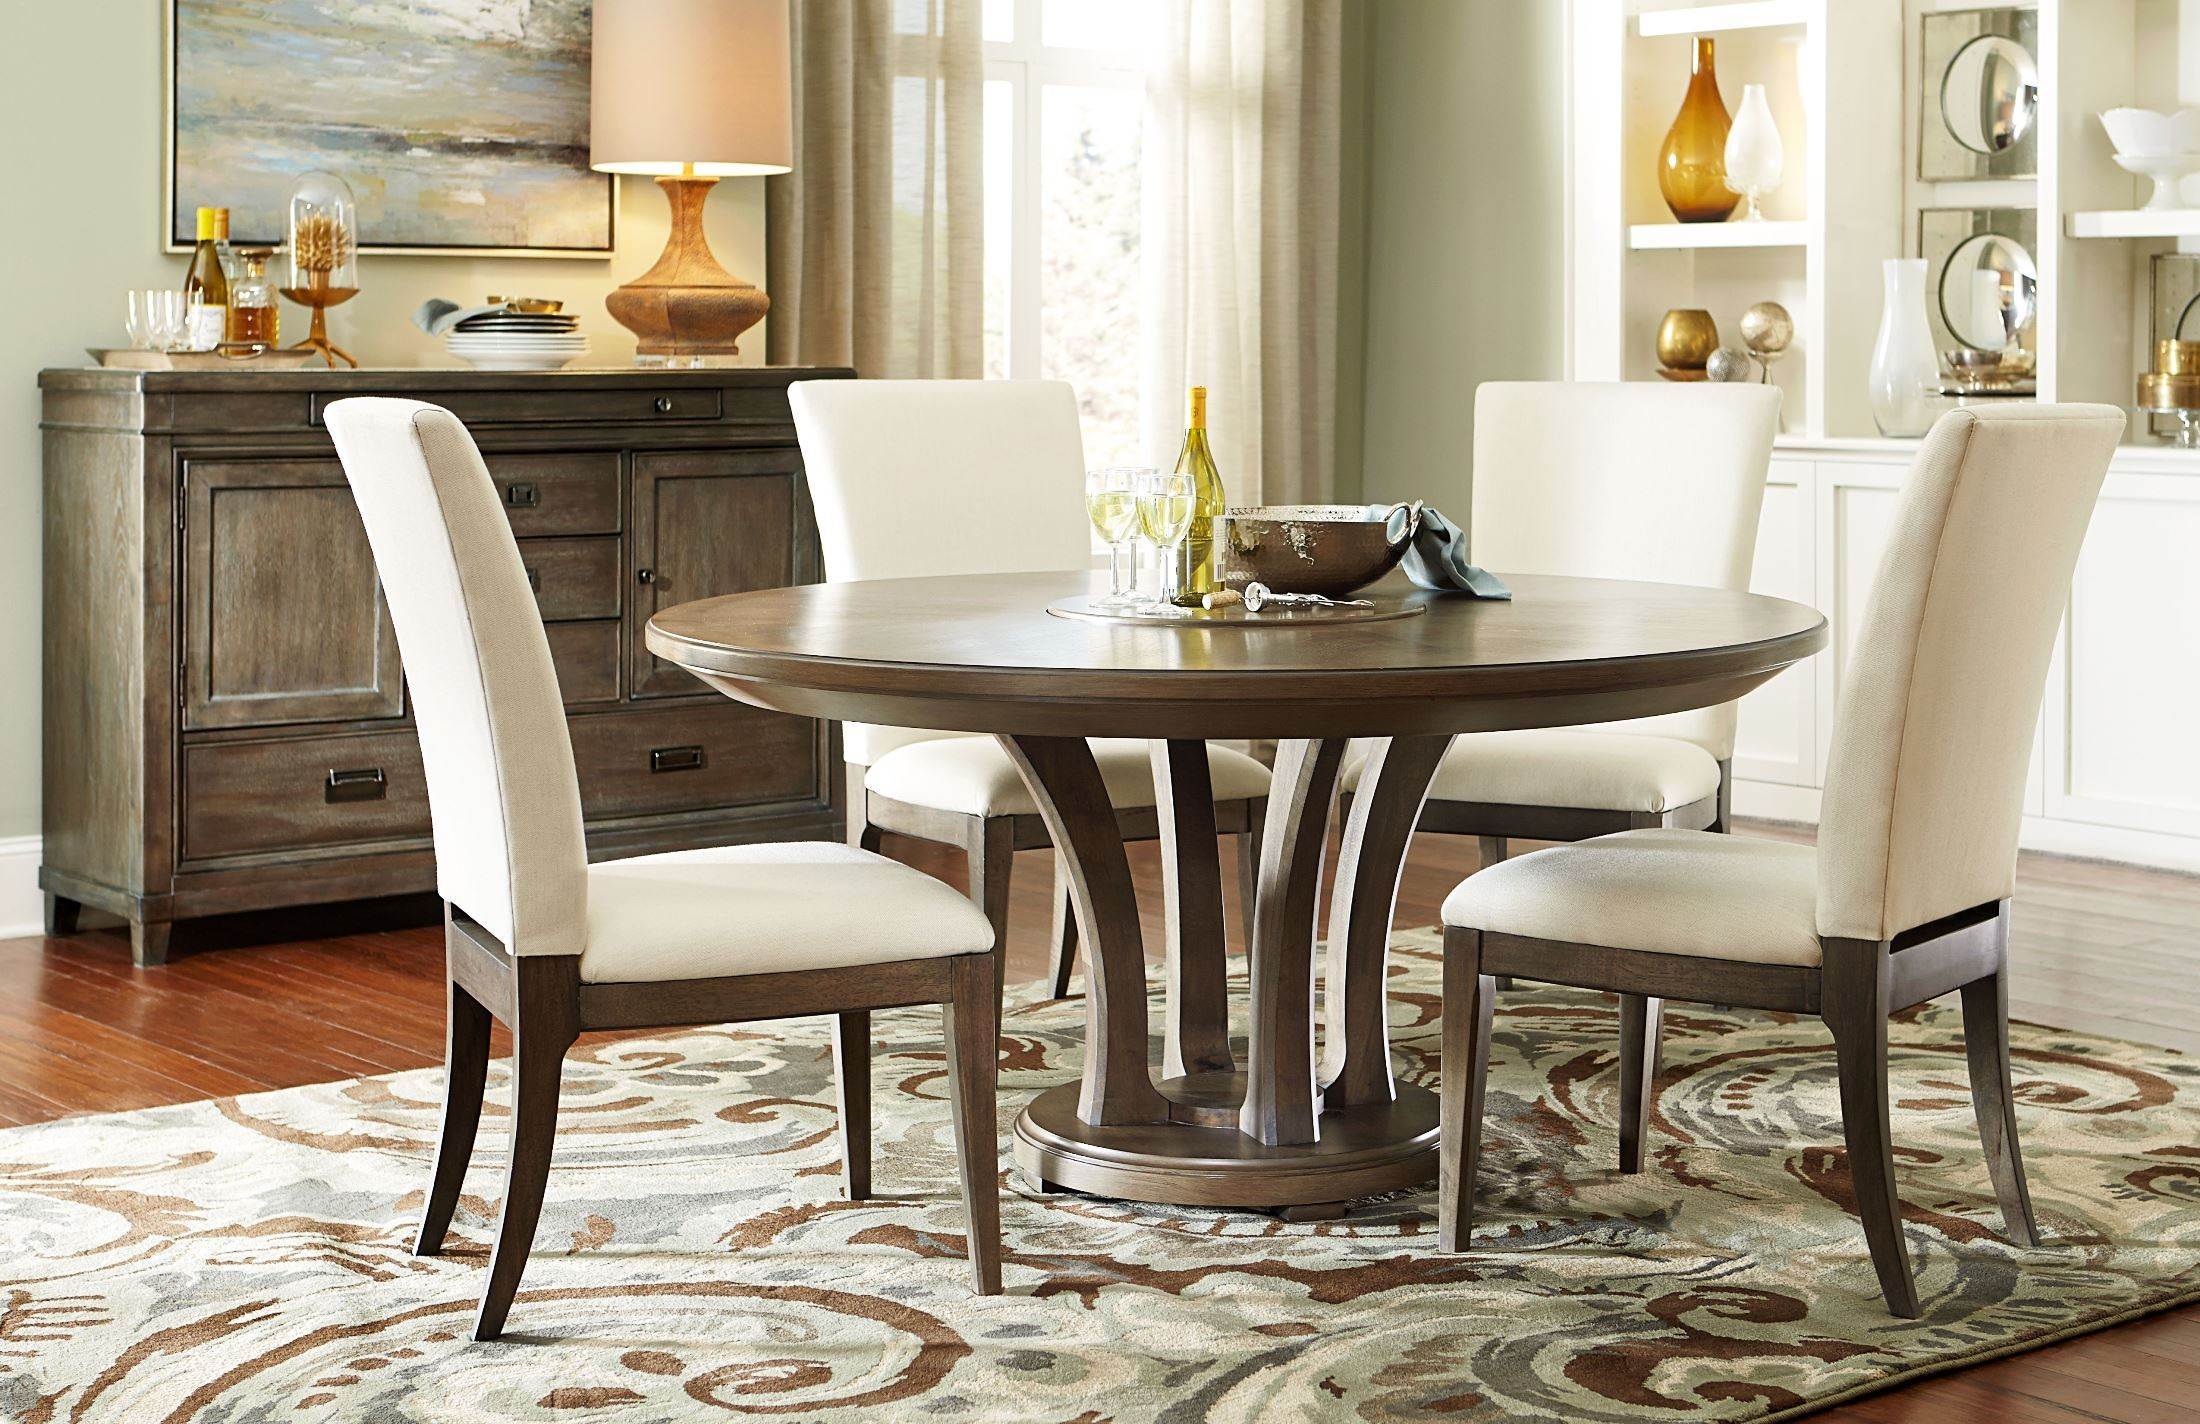 """Park Studio Weathered Taupe 62"""" Round Dining Table From In Best And Newest Corrigan Studio Fawridge Dining Tables (View 11 of 15)"""